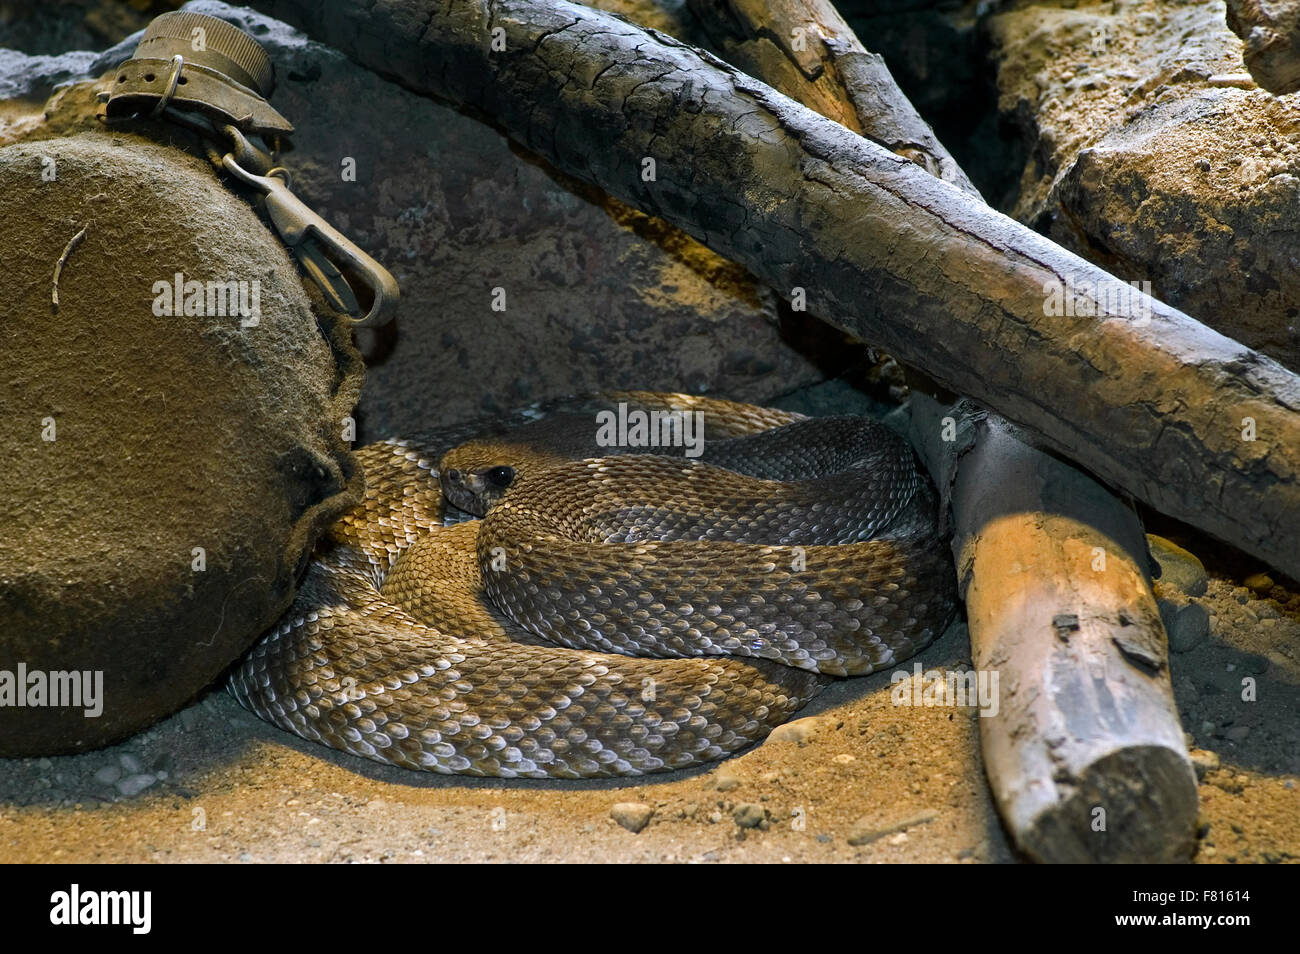 Red rattler / western diamond-backed rattlesnake (Crotalus ruber) resting curled up under woodpile of campfire, Stock Photo